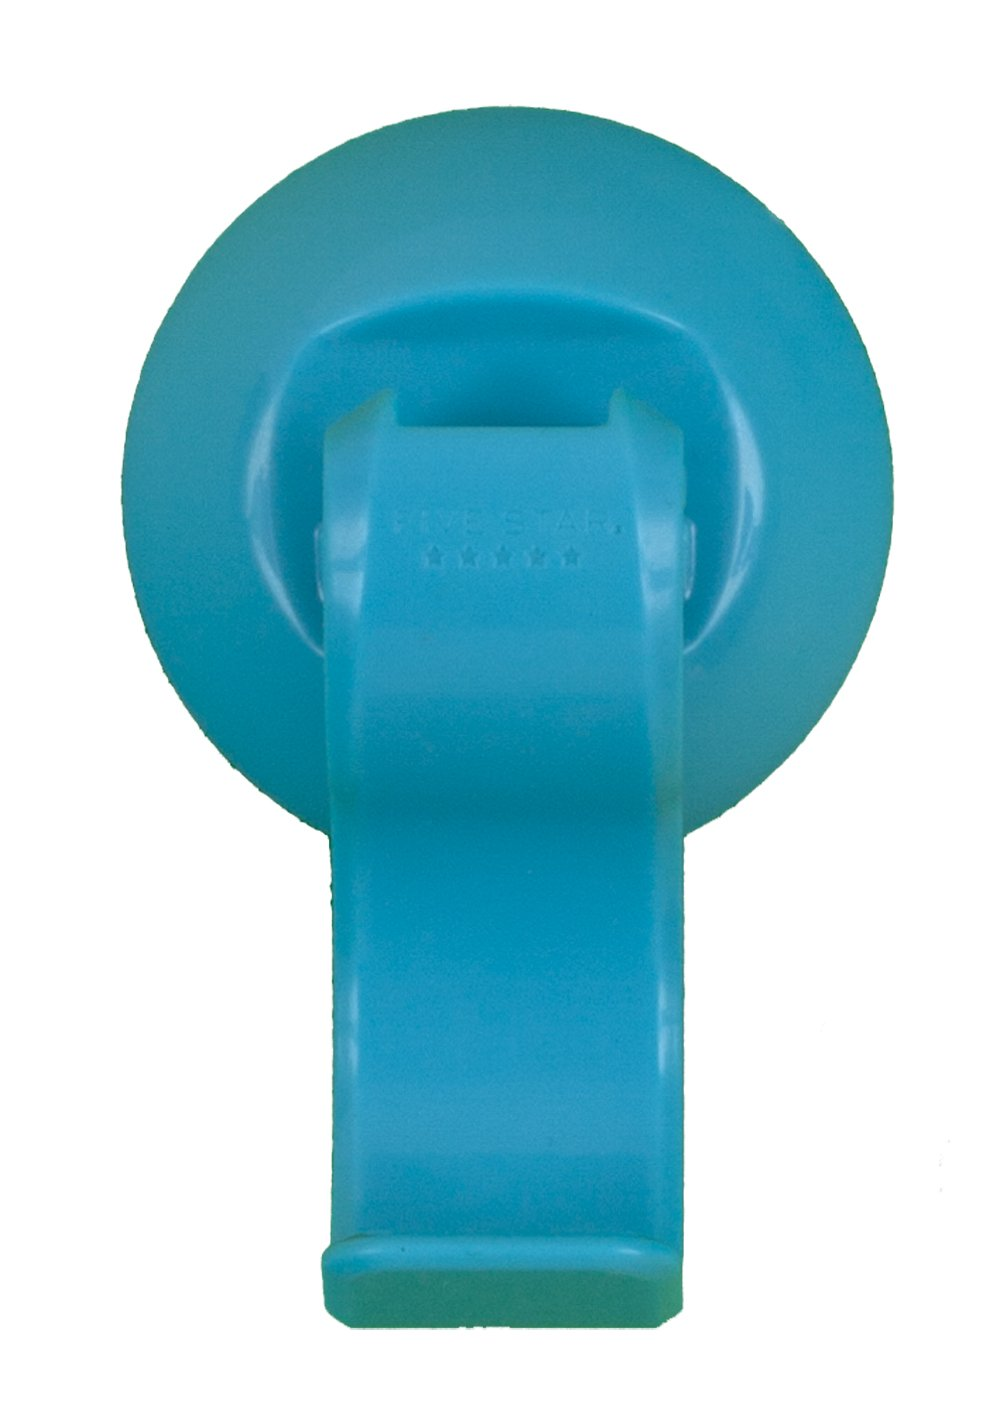 Five Star Suction Cup Hook, 2.63 x 1.93 x 1 Inches, Teal (72636) by Five Star (Image #1)